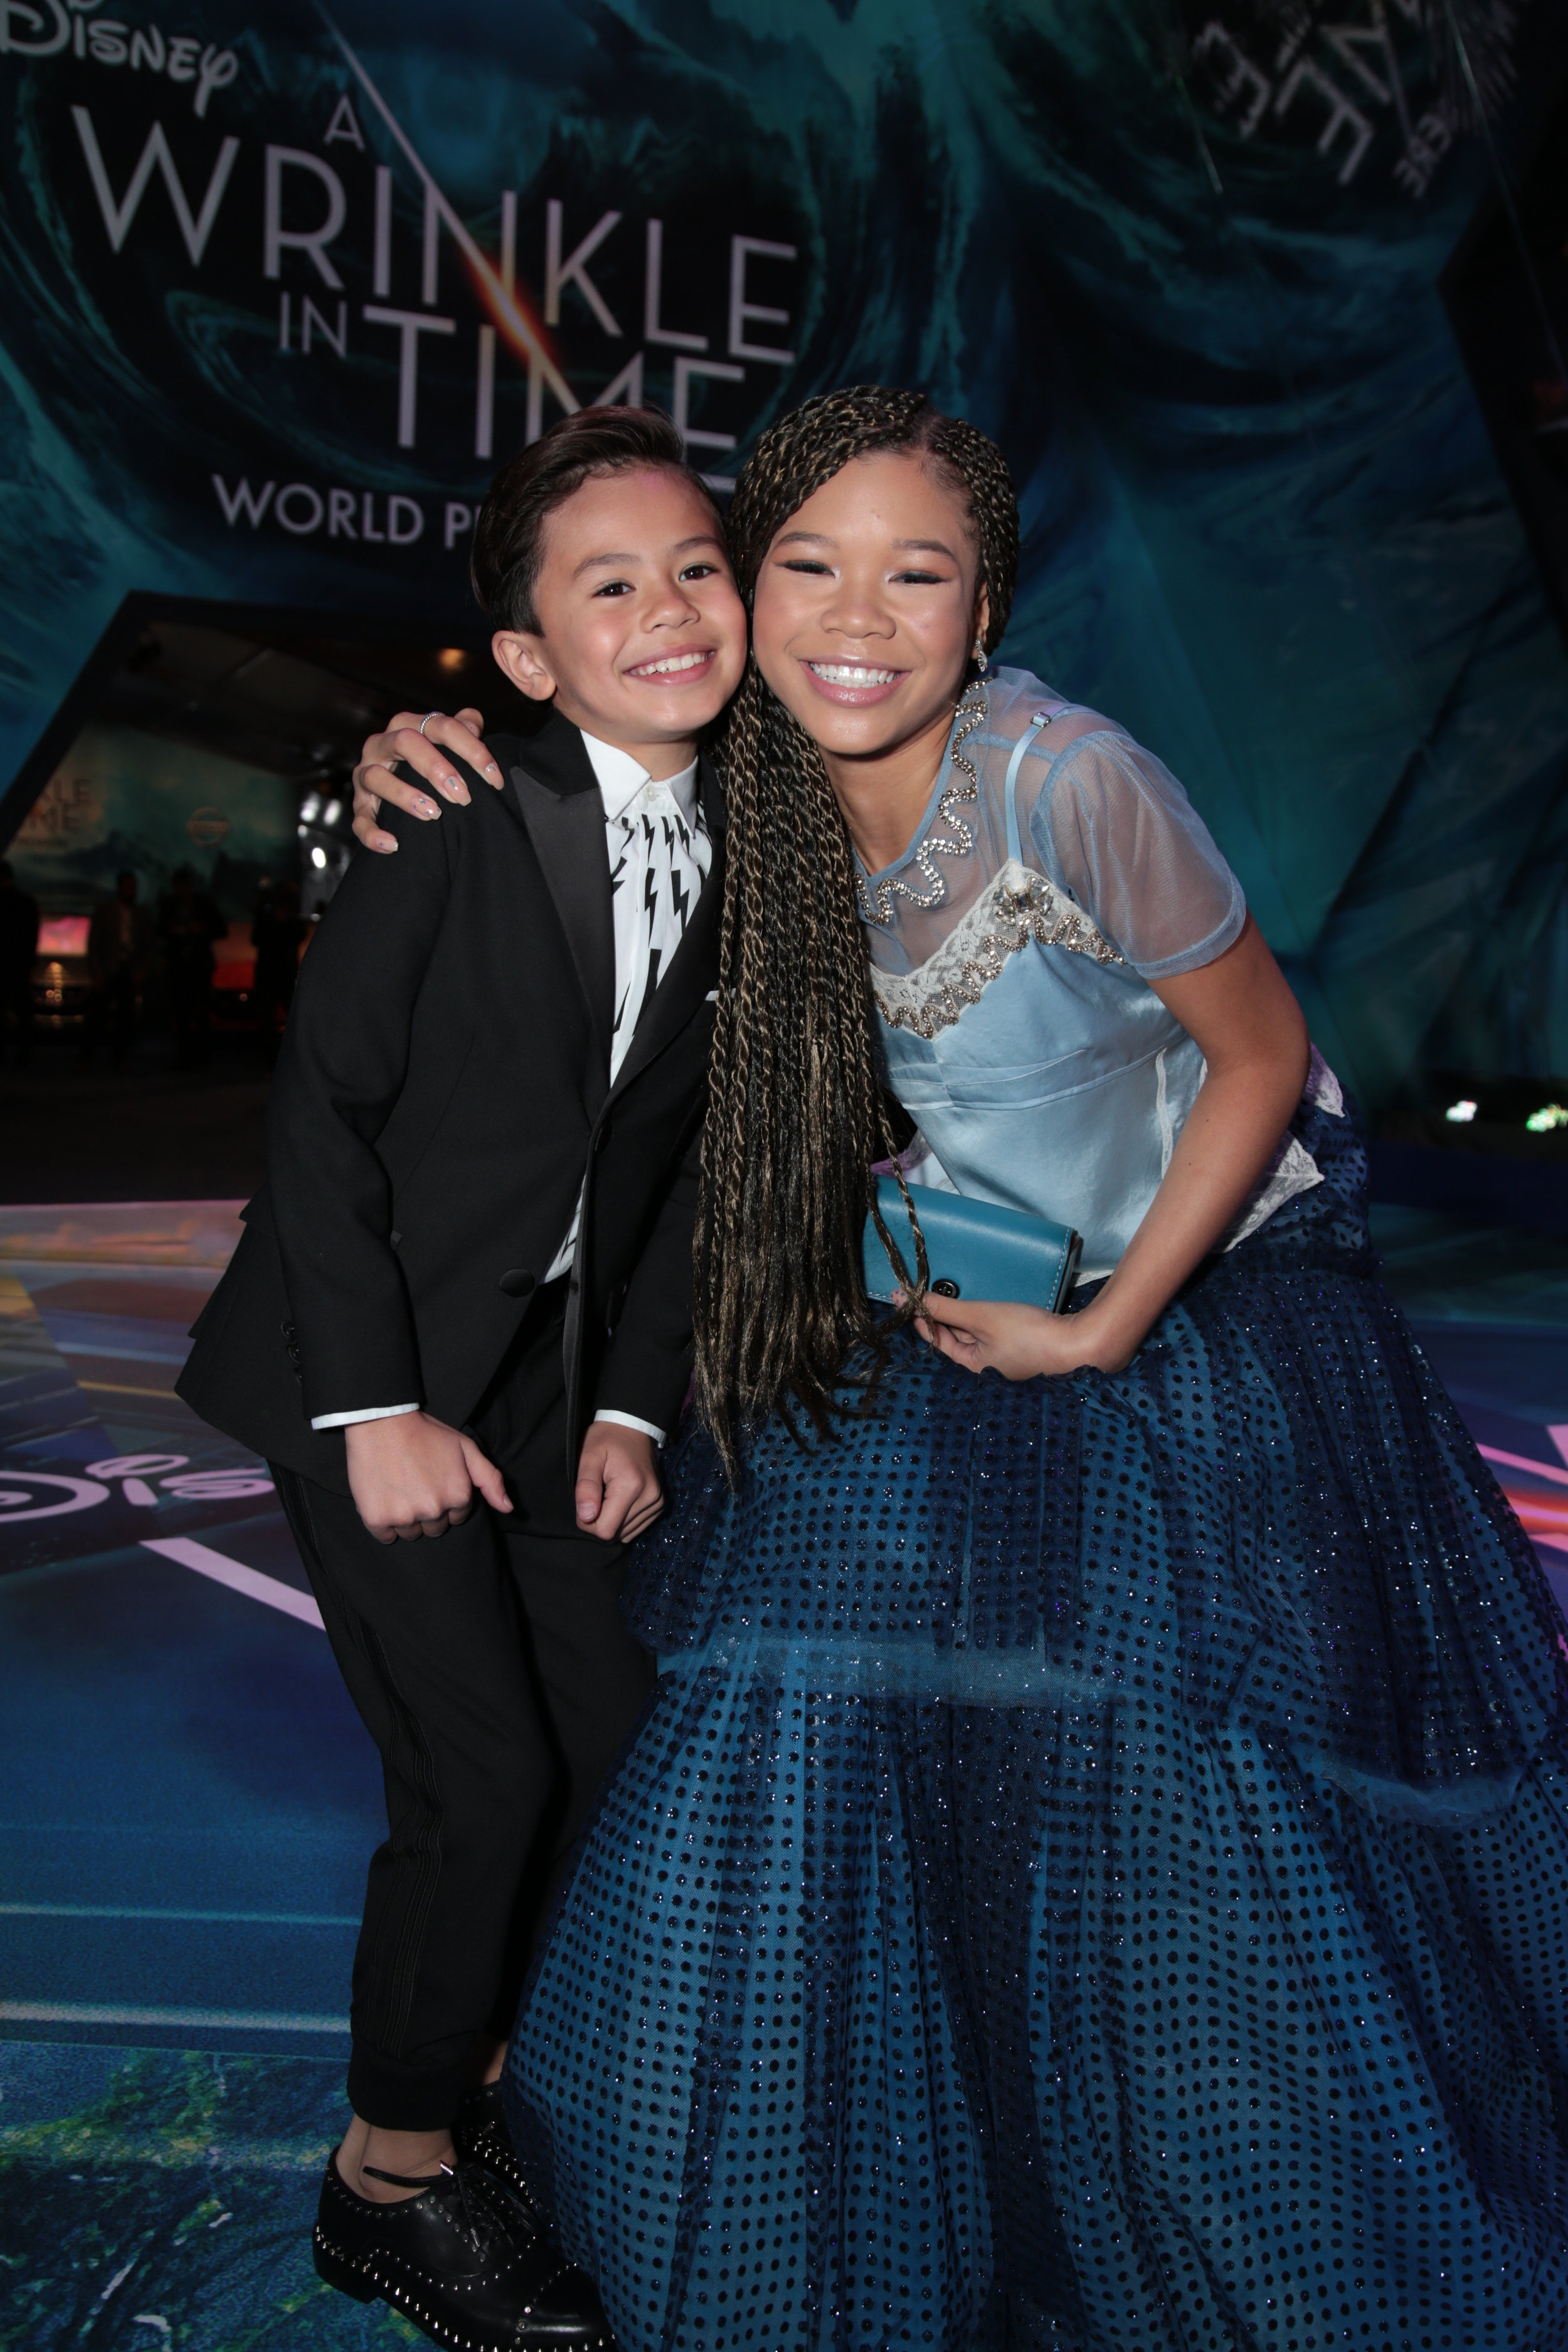 Deric and co-star Storm Reid